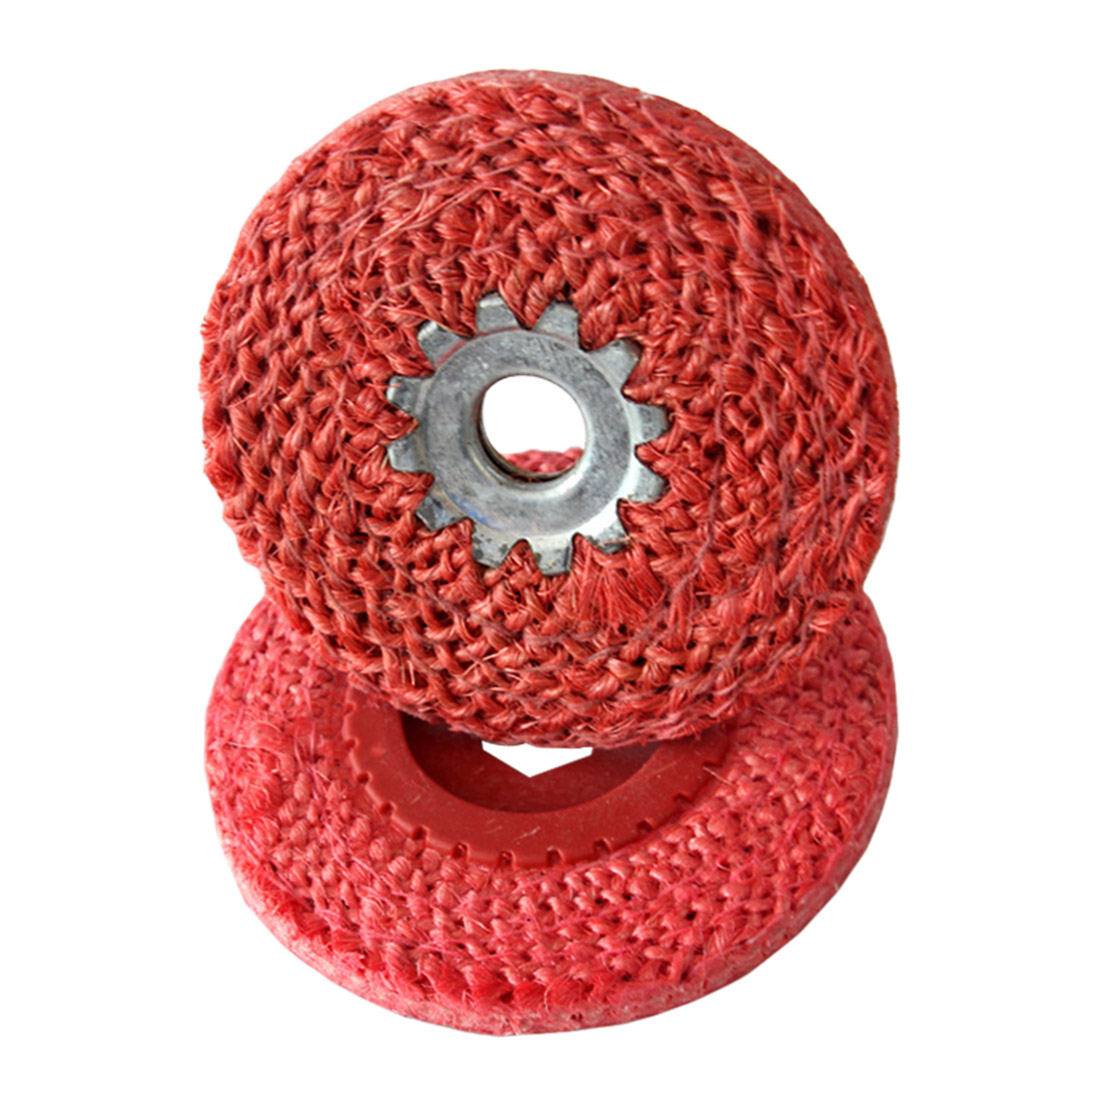 Red Hemp Rope Buffing Wheel For Stainless Steel Metal Coarse Grinding Angle Grinder Polishing Tool 100MM